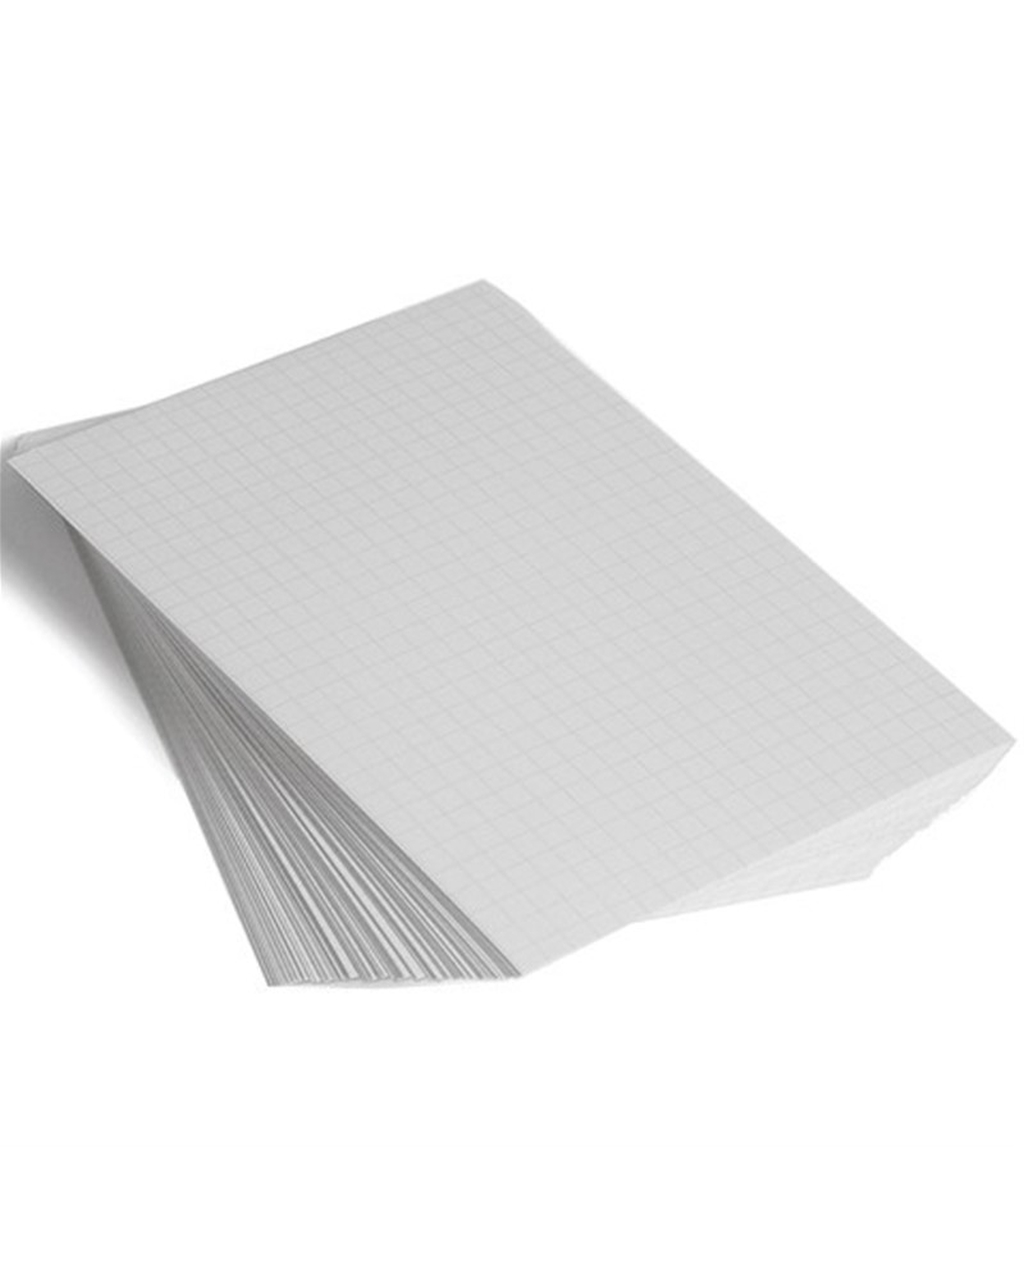 A4 Exercise Paper Unpunched, 10mm Squares